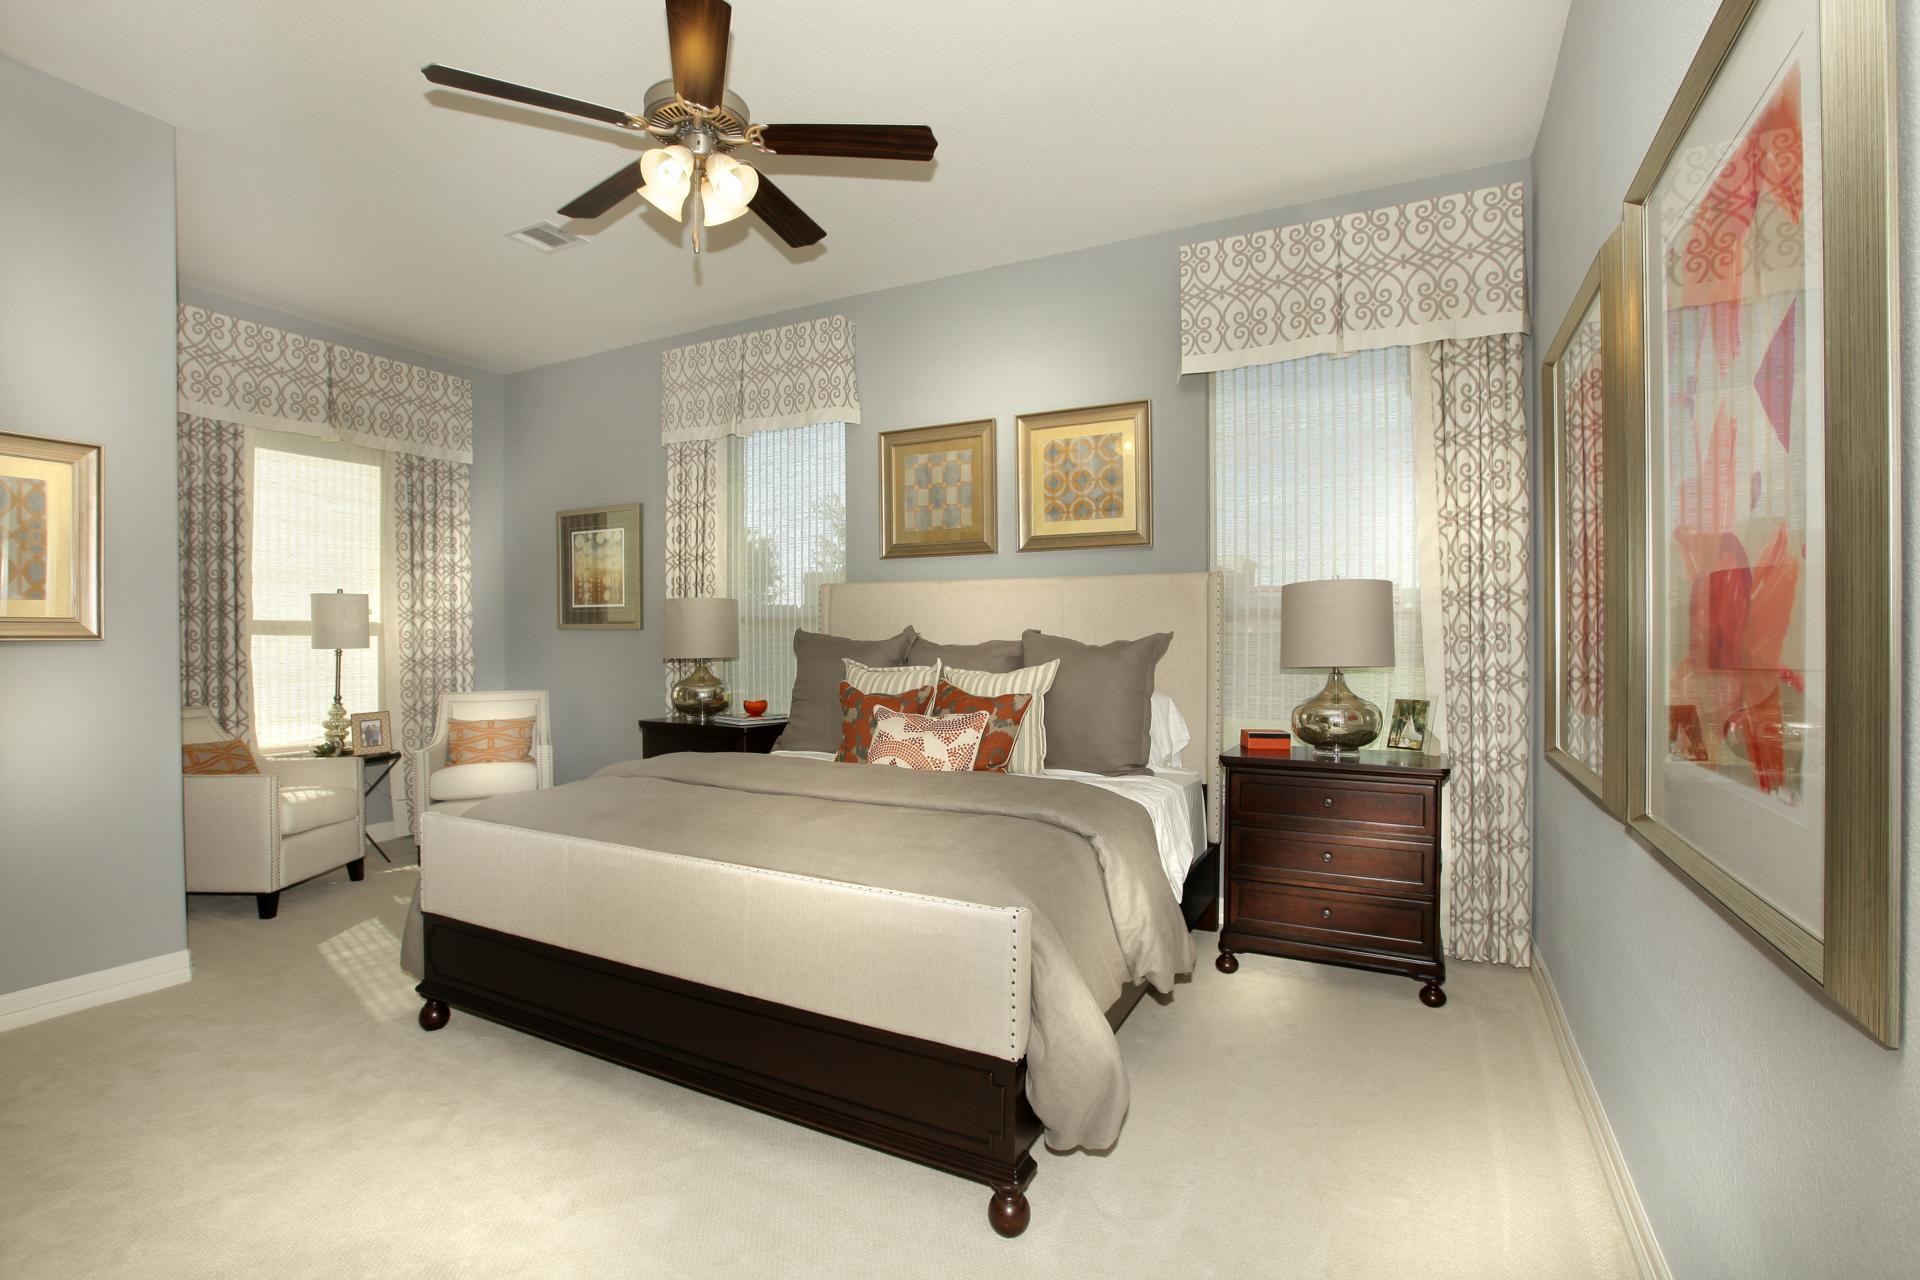 Bedroom featured in the Deerfield II By Drees Custom Homes in Austin, TX